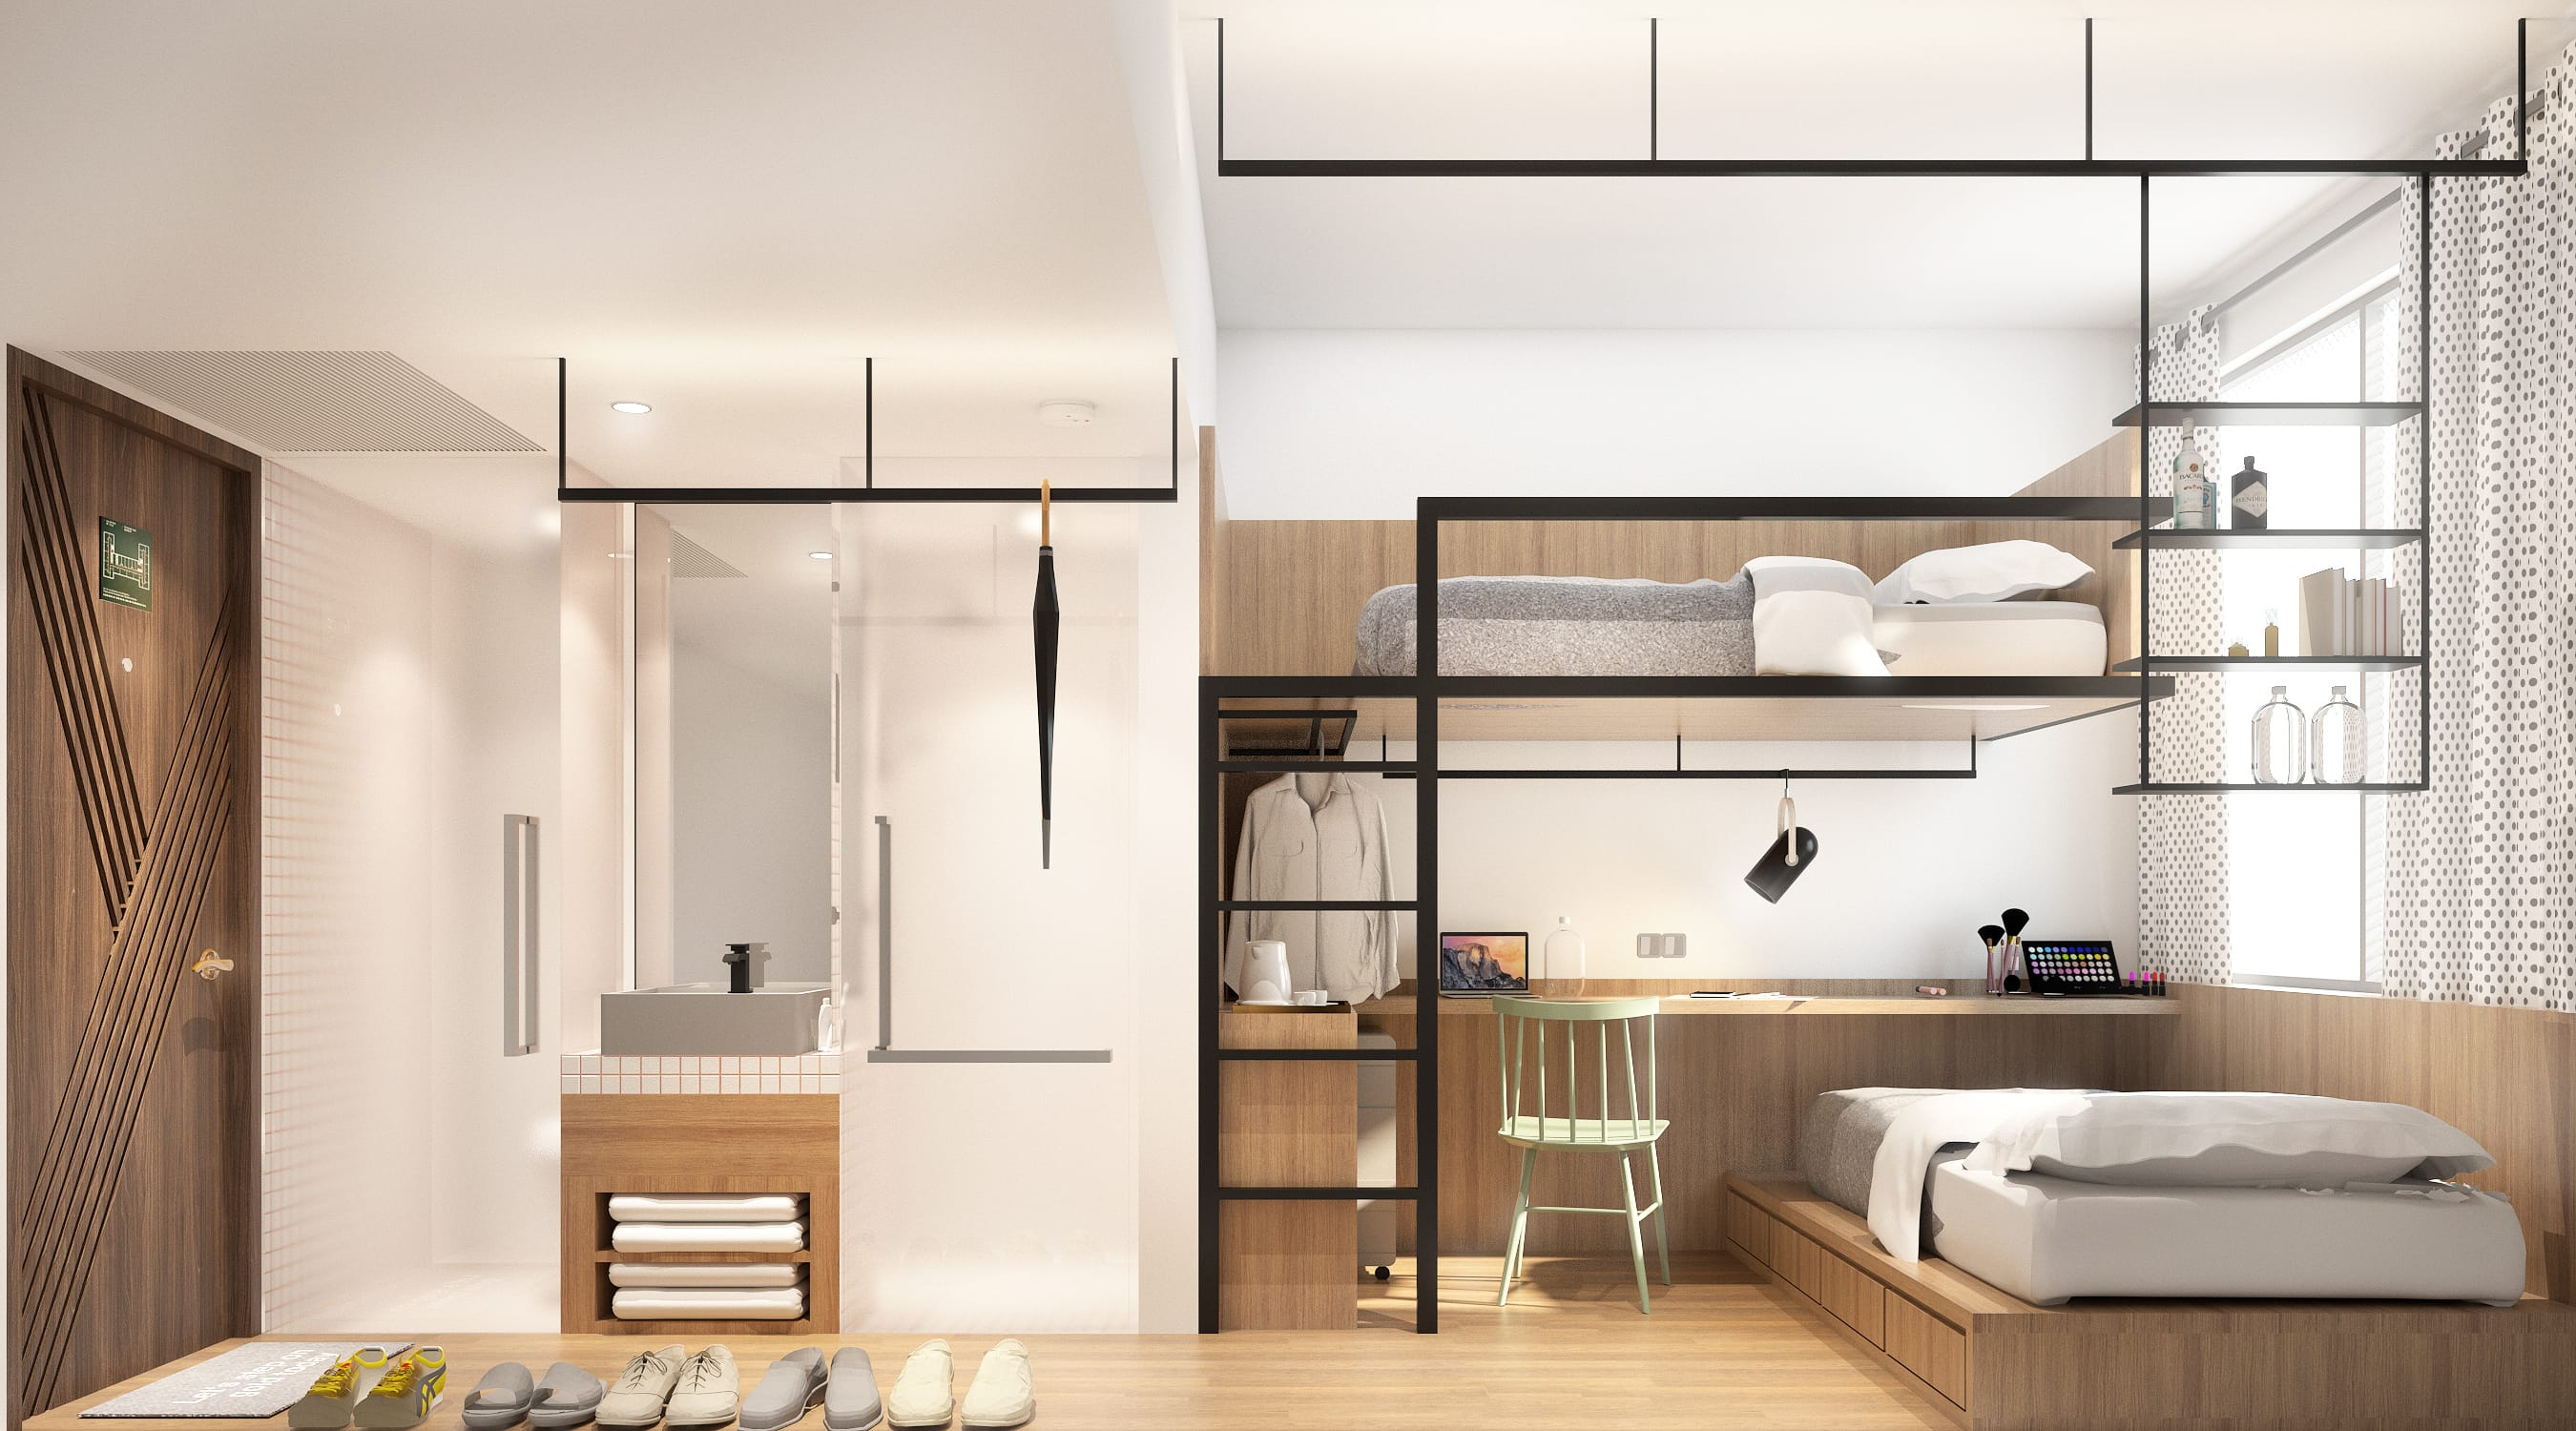 The best co-living spaces in Singapore to feel at home